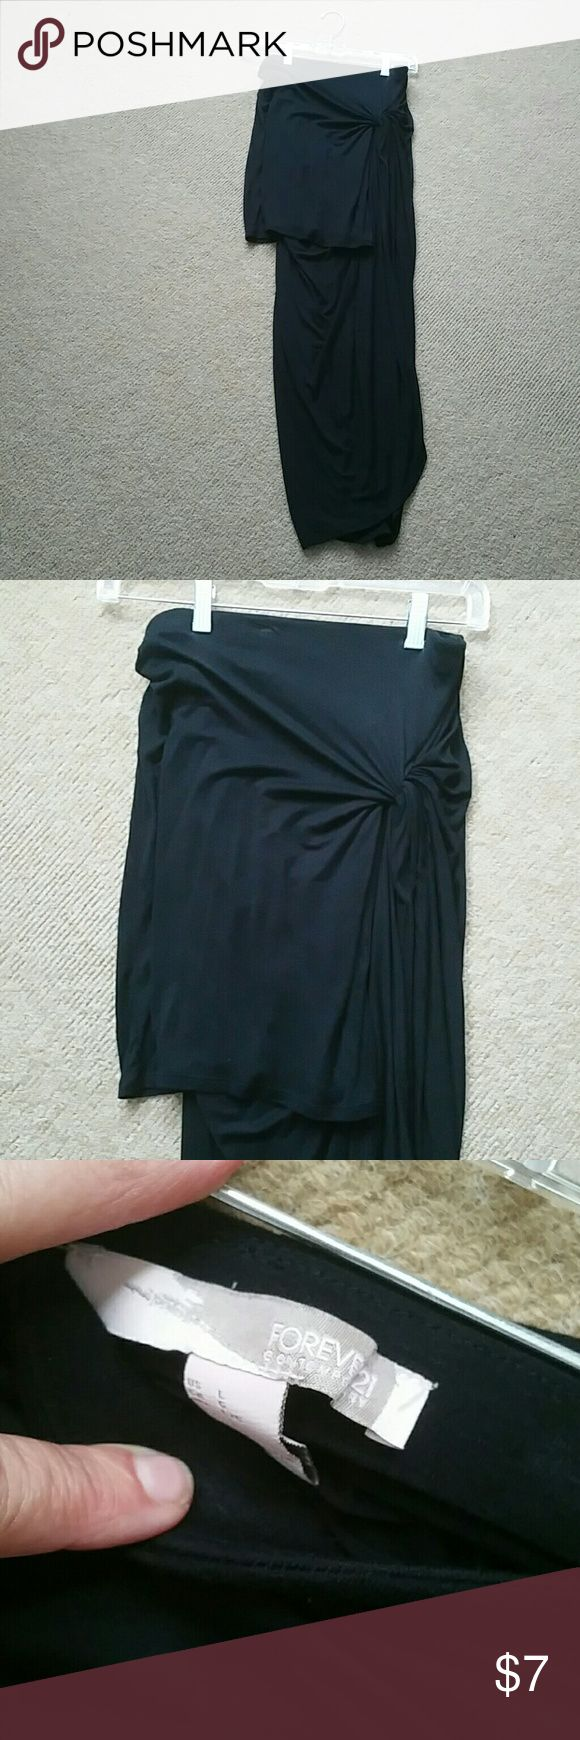 Half short half long black skirt Stretchy waist, fun skirt to wear out or as a beach cover up, hardly worn, runs a little small Forever 21 Skirts High Low